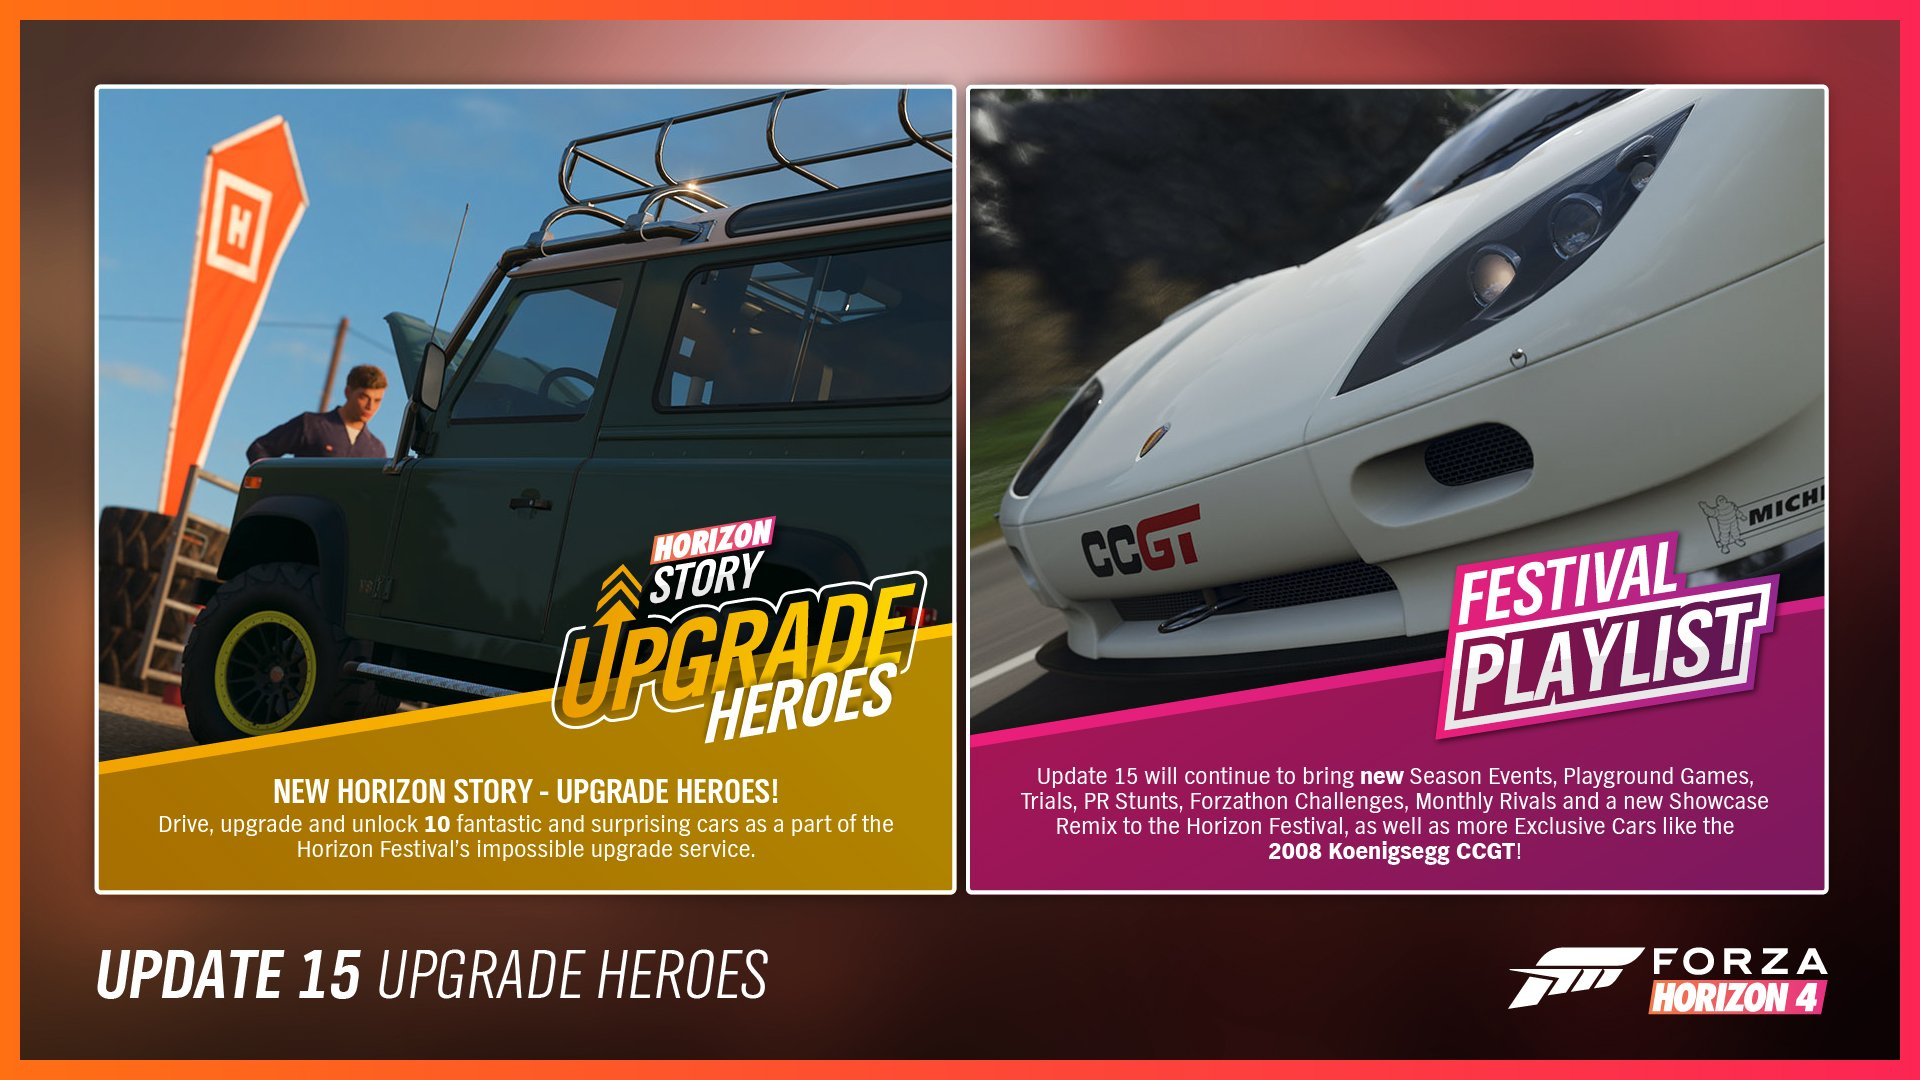 Forza Horizon 4/Update 15